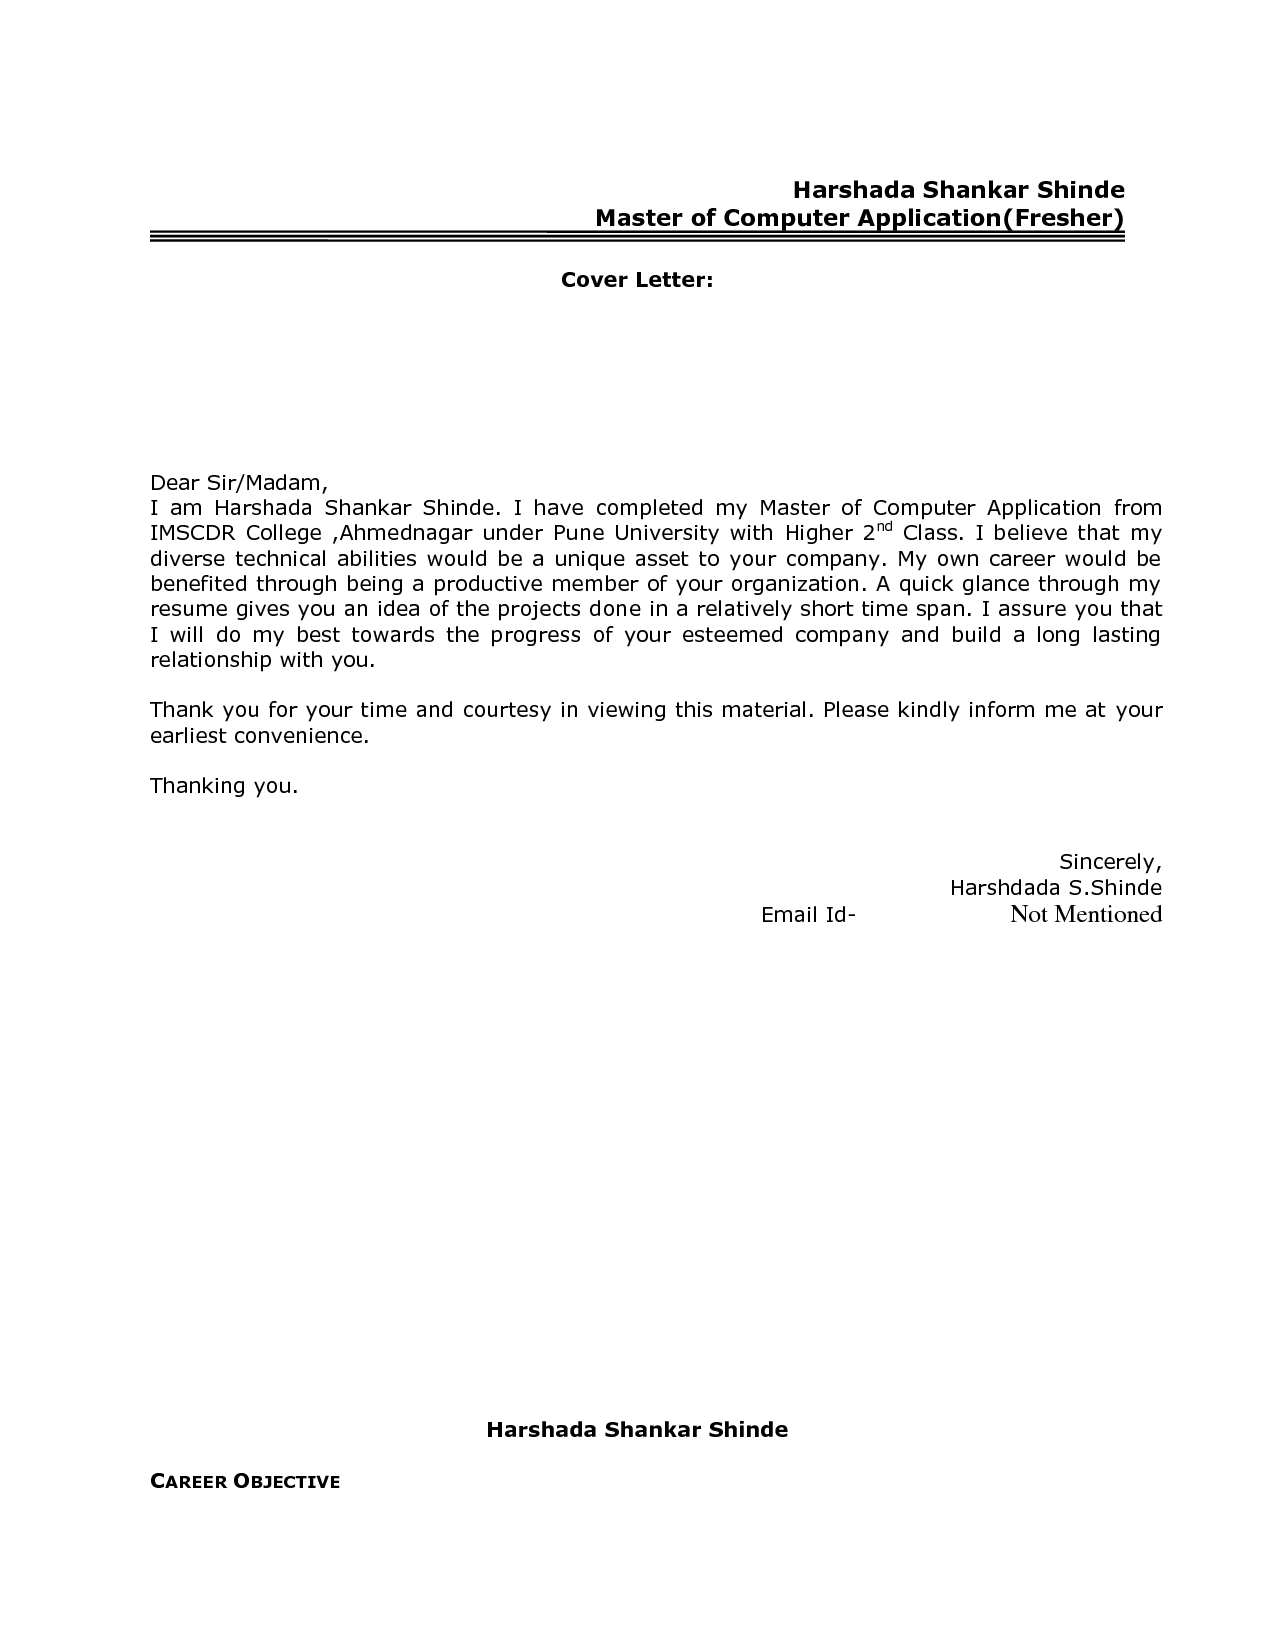 Sample Resume Format For Freshers Best Resume Cover Letter Format For Freshers Govt Jobcover